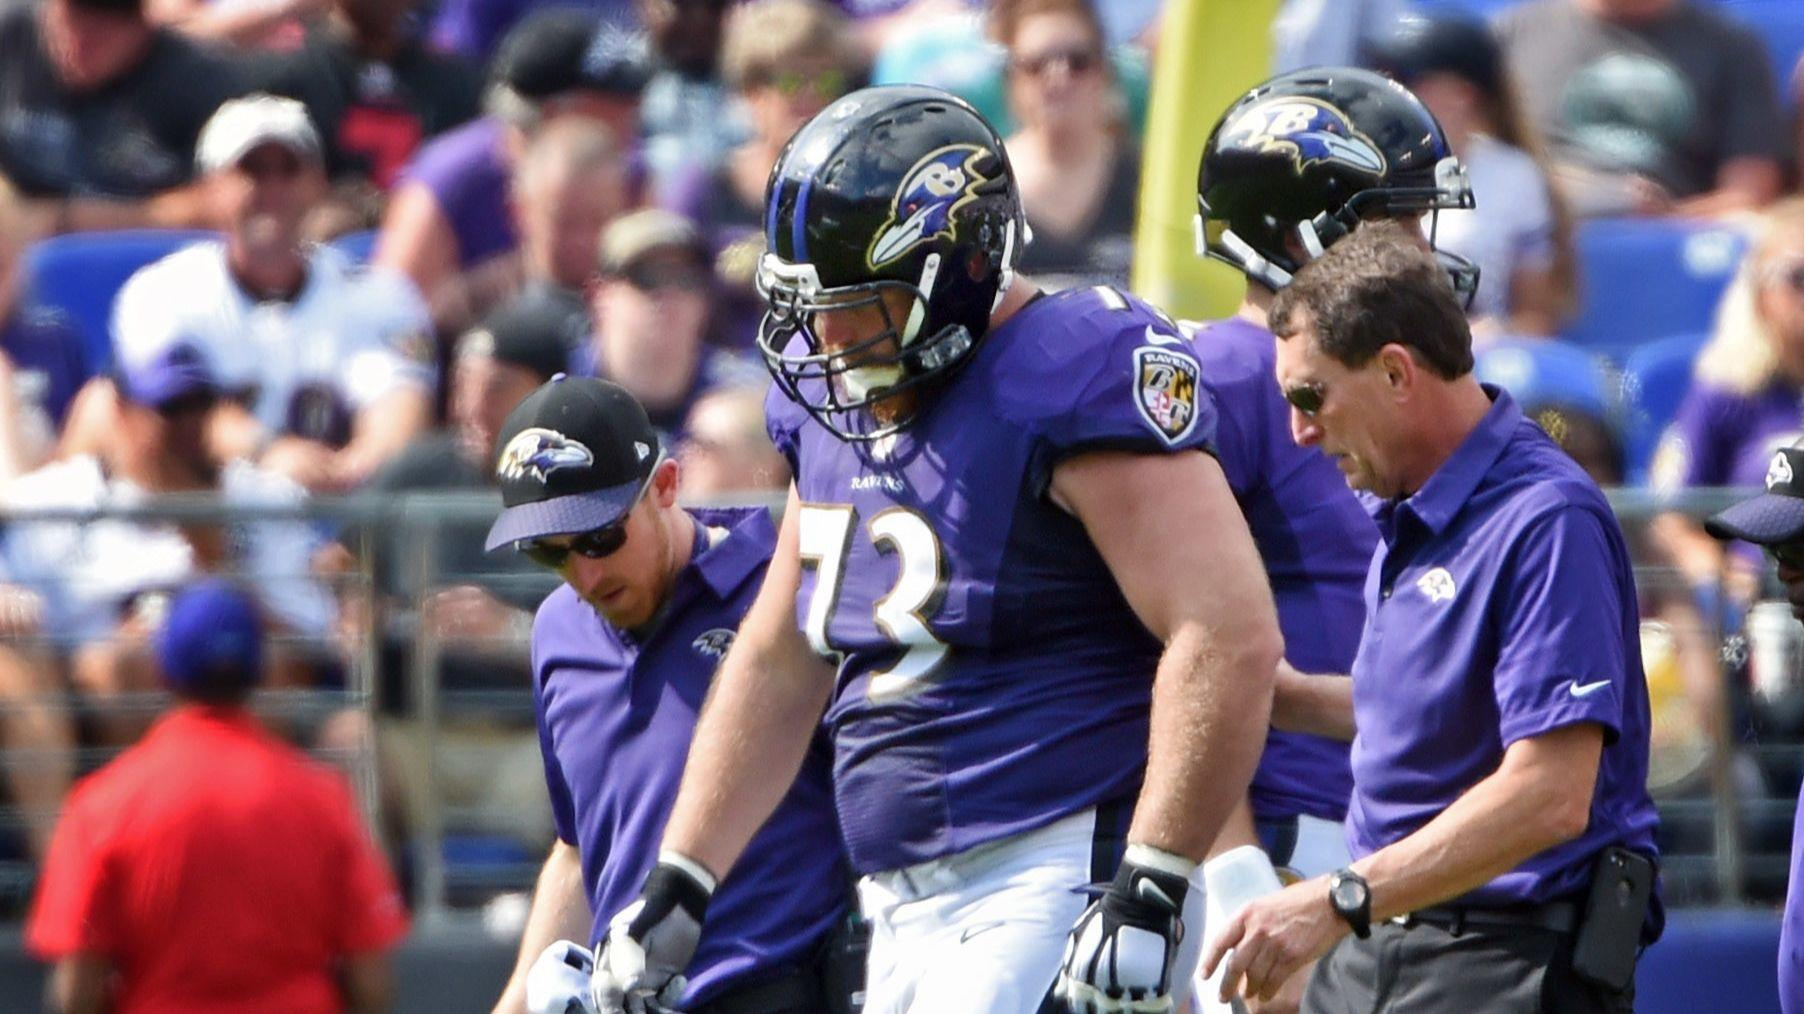 Bs-sp-ravens-marshal-yanda-recovering-from-shoulder-surgery-20180719